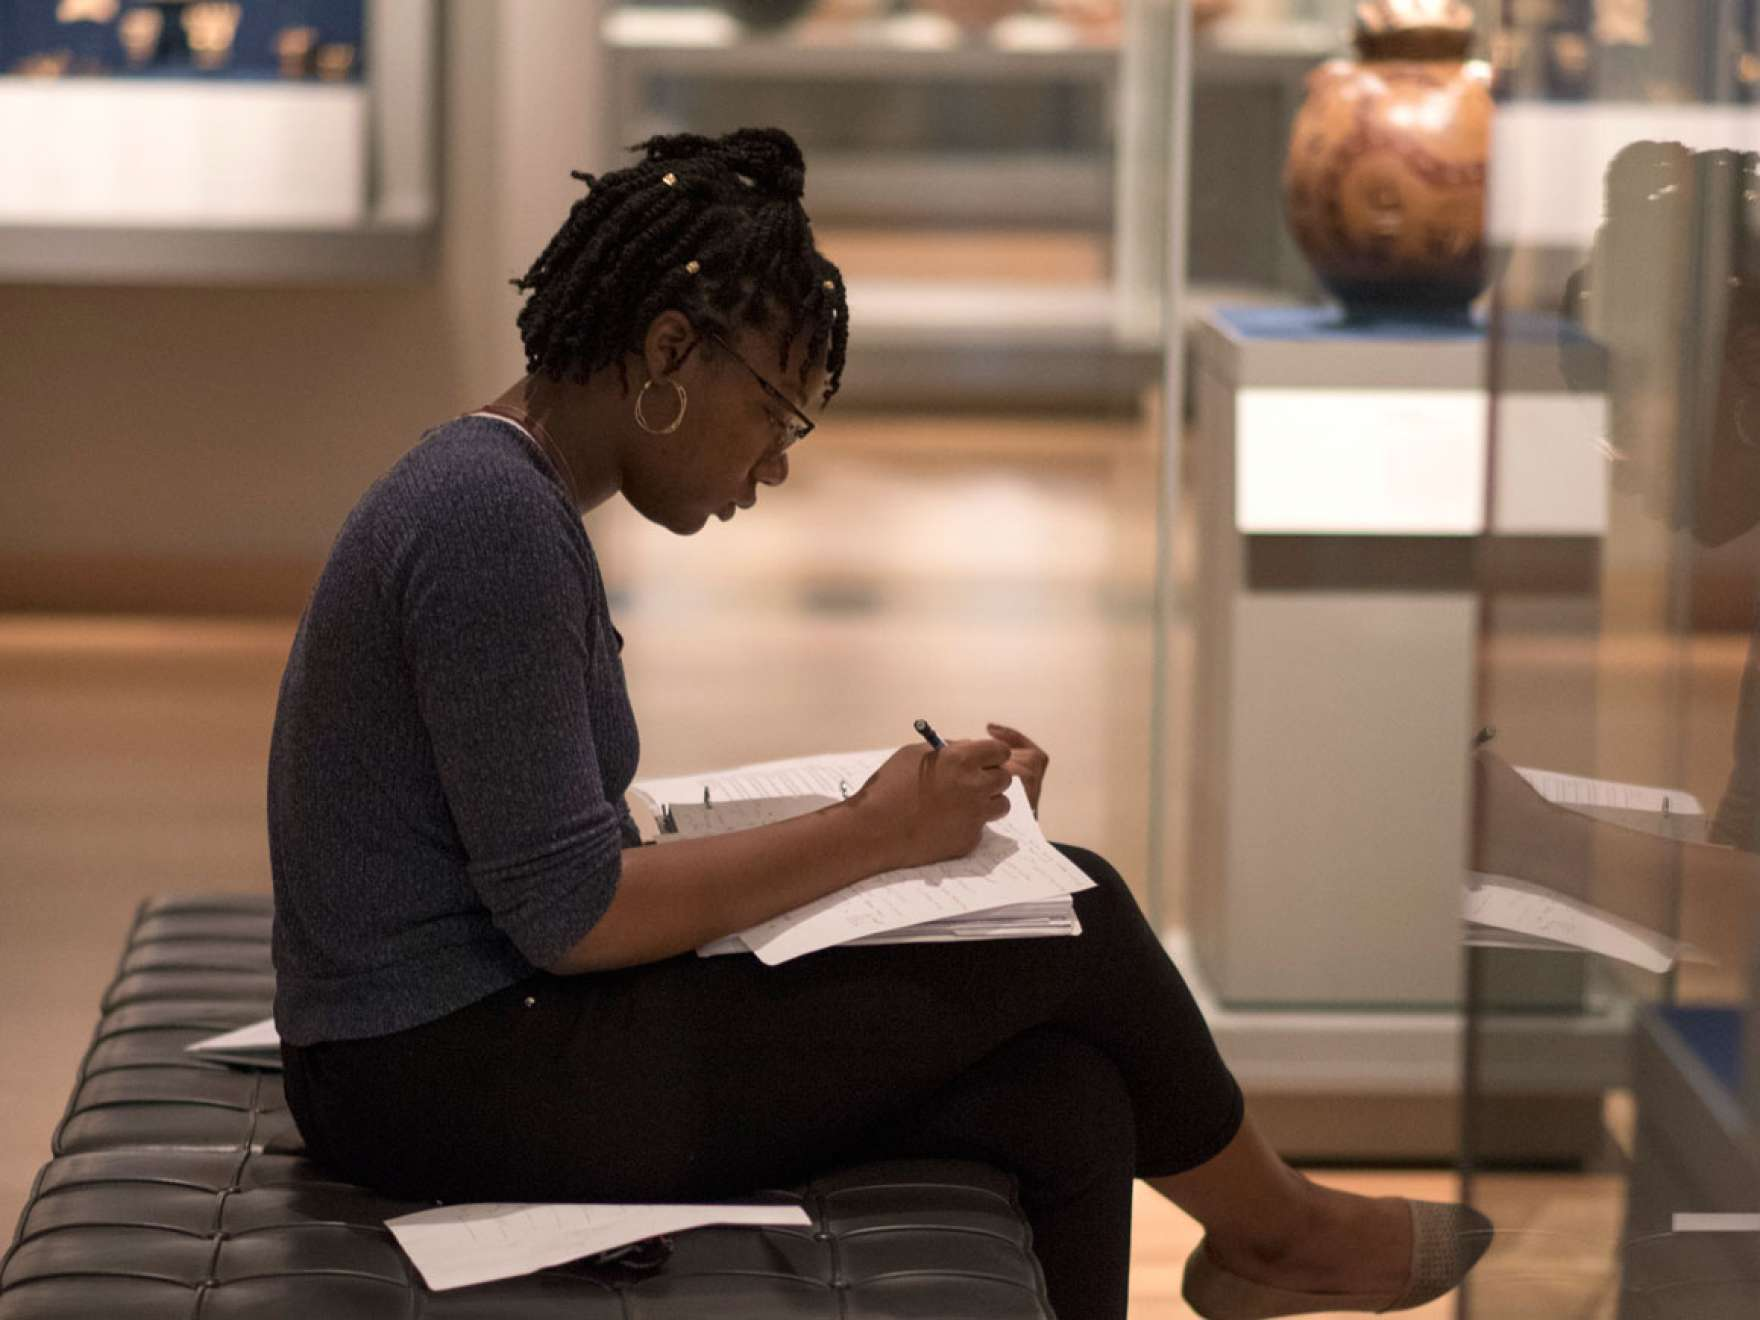 Visitor sitting on gallery bench writing in binder in front of Mayan display case